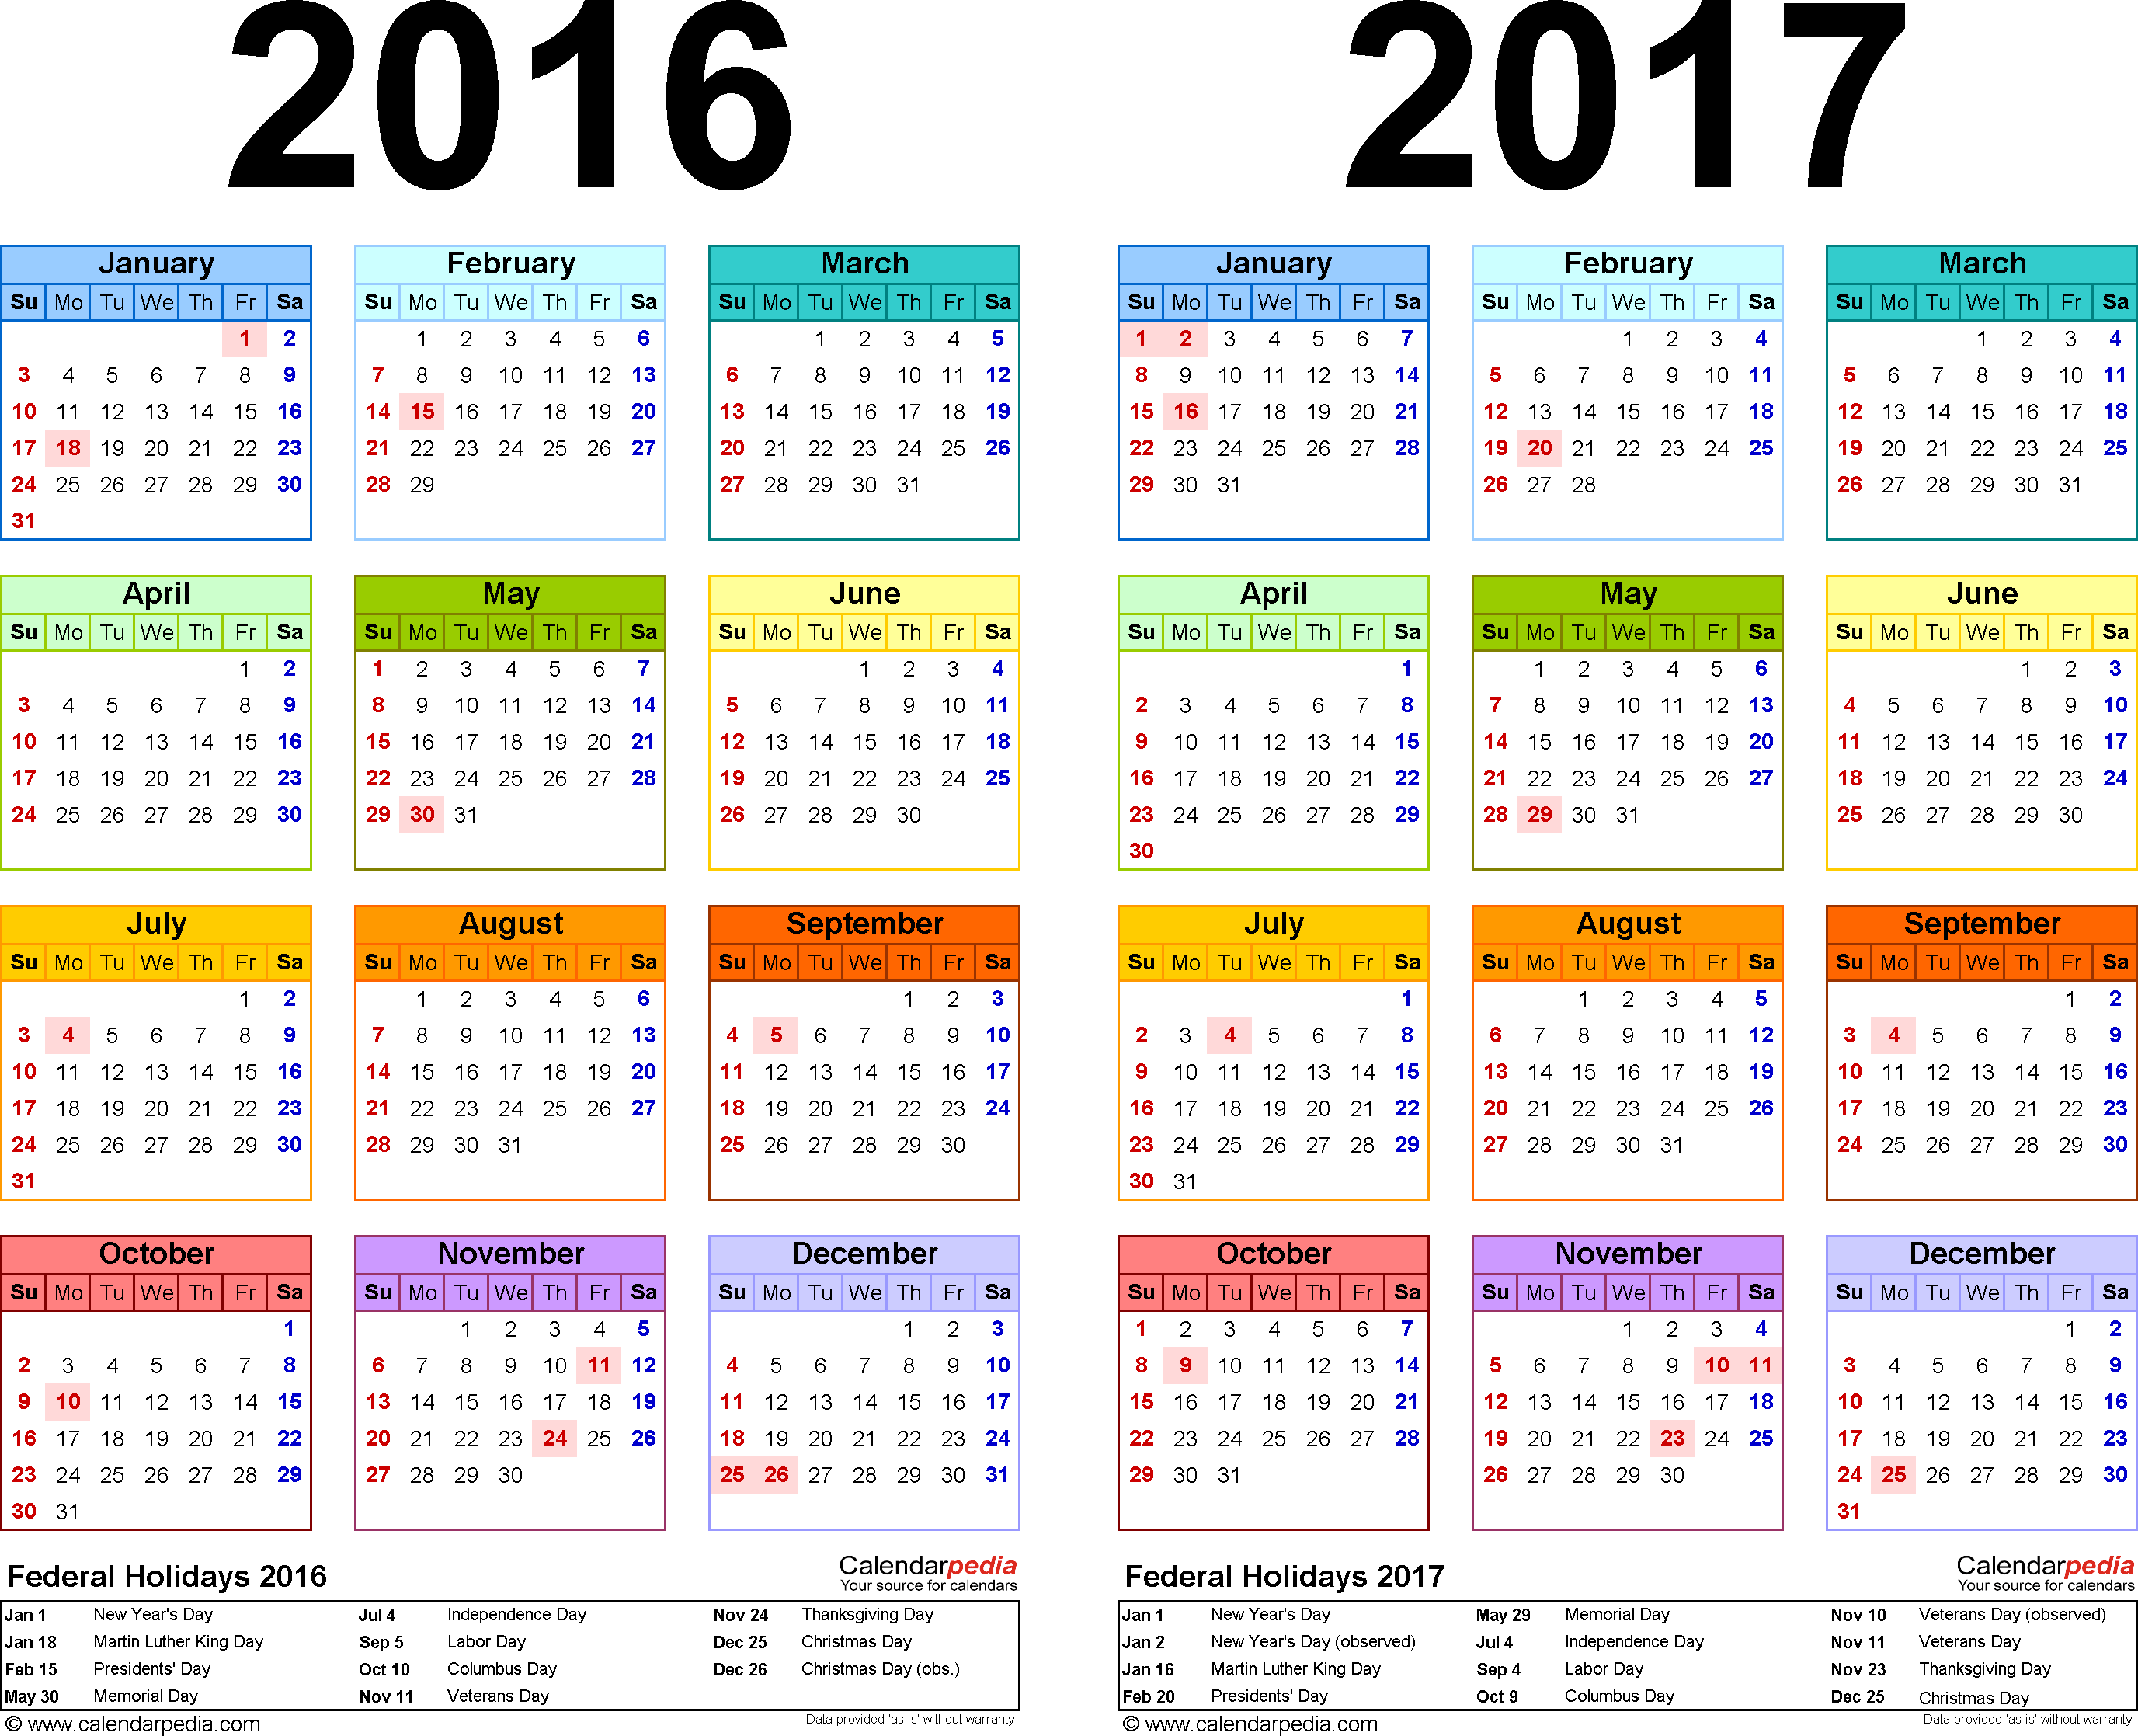 2016-2017 Calendar - free printable two-year PDF calendars